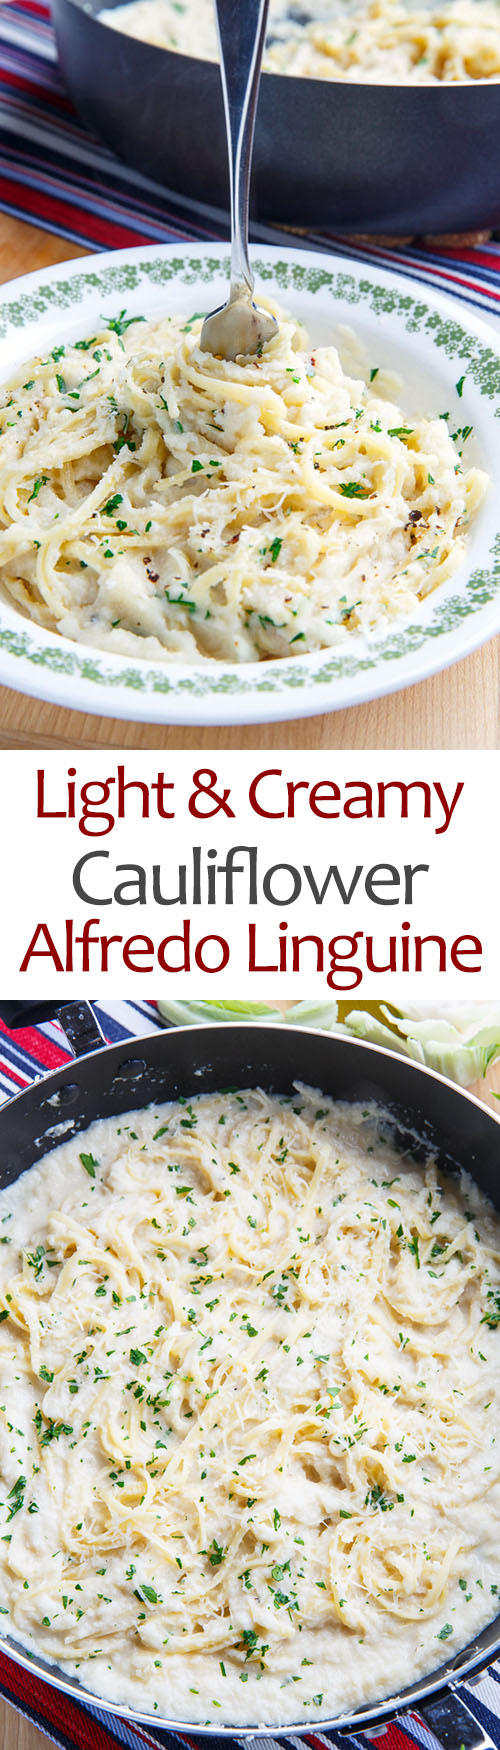 Light and Creamy Cauliflower Alfredo Linguine